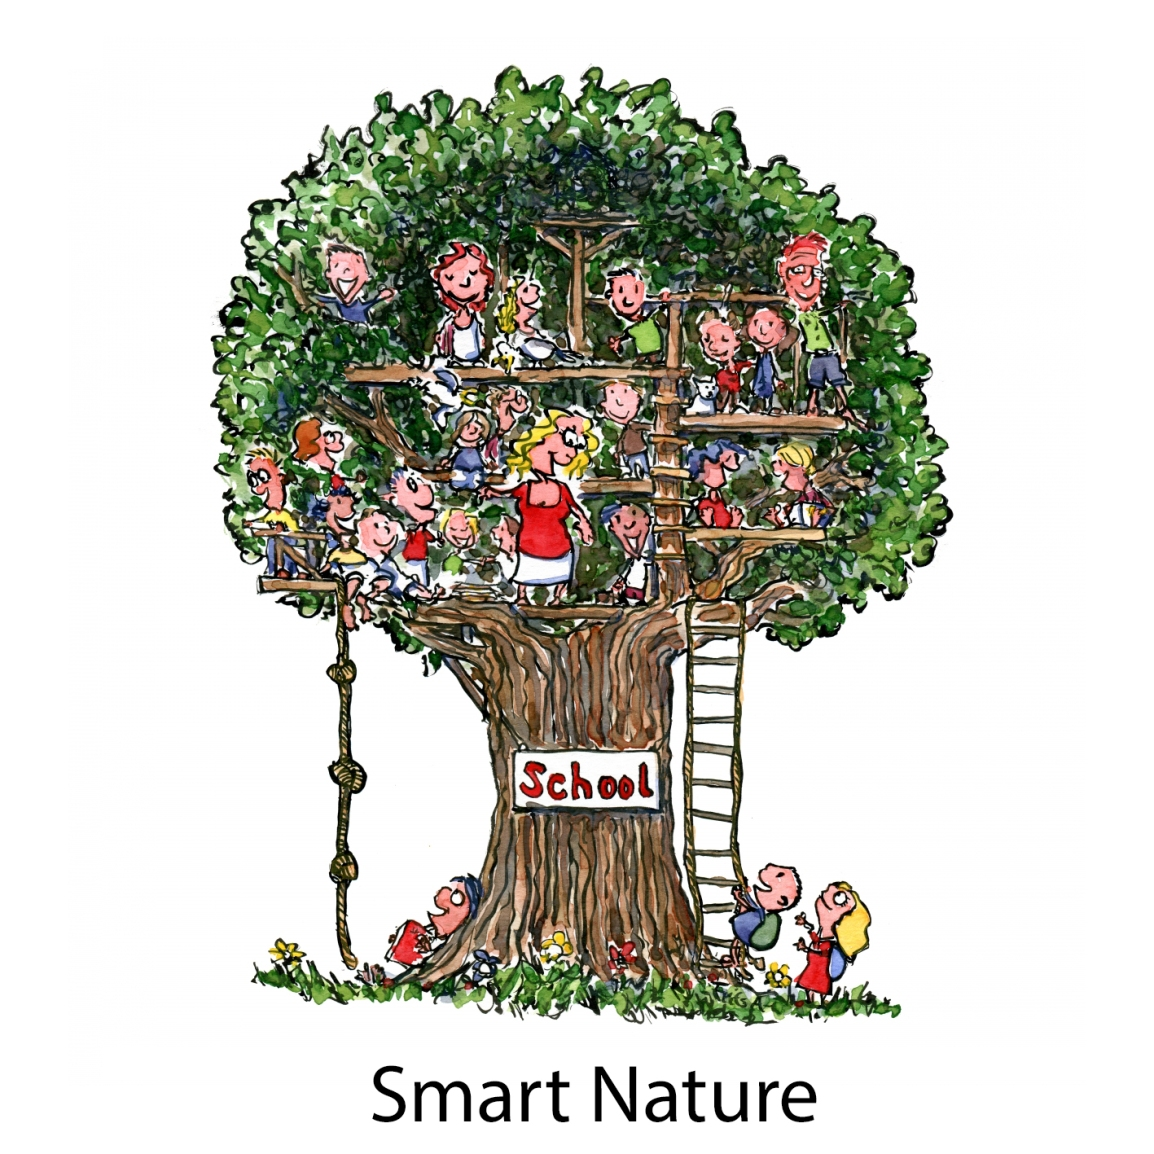 Smart nature is better than smart boards